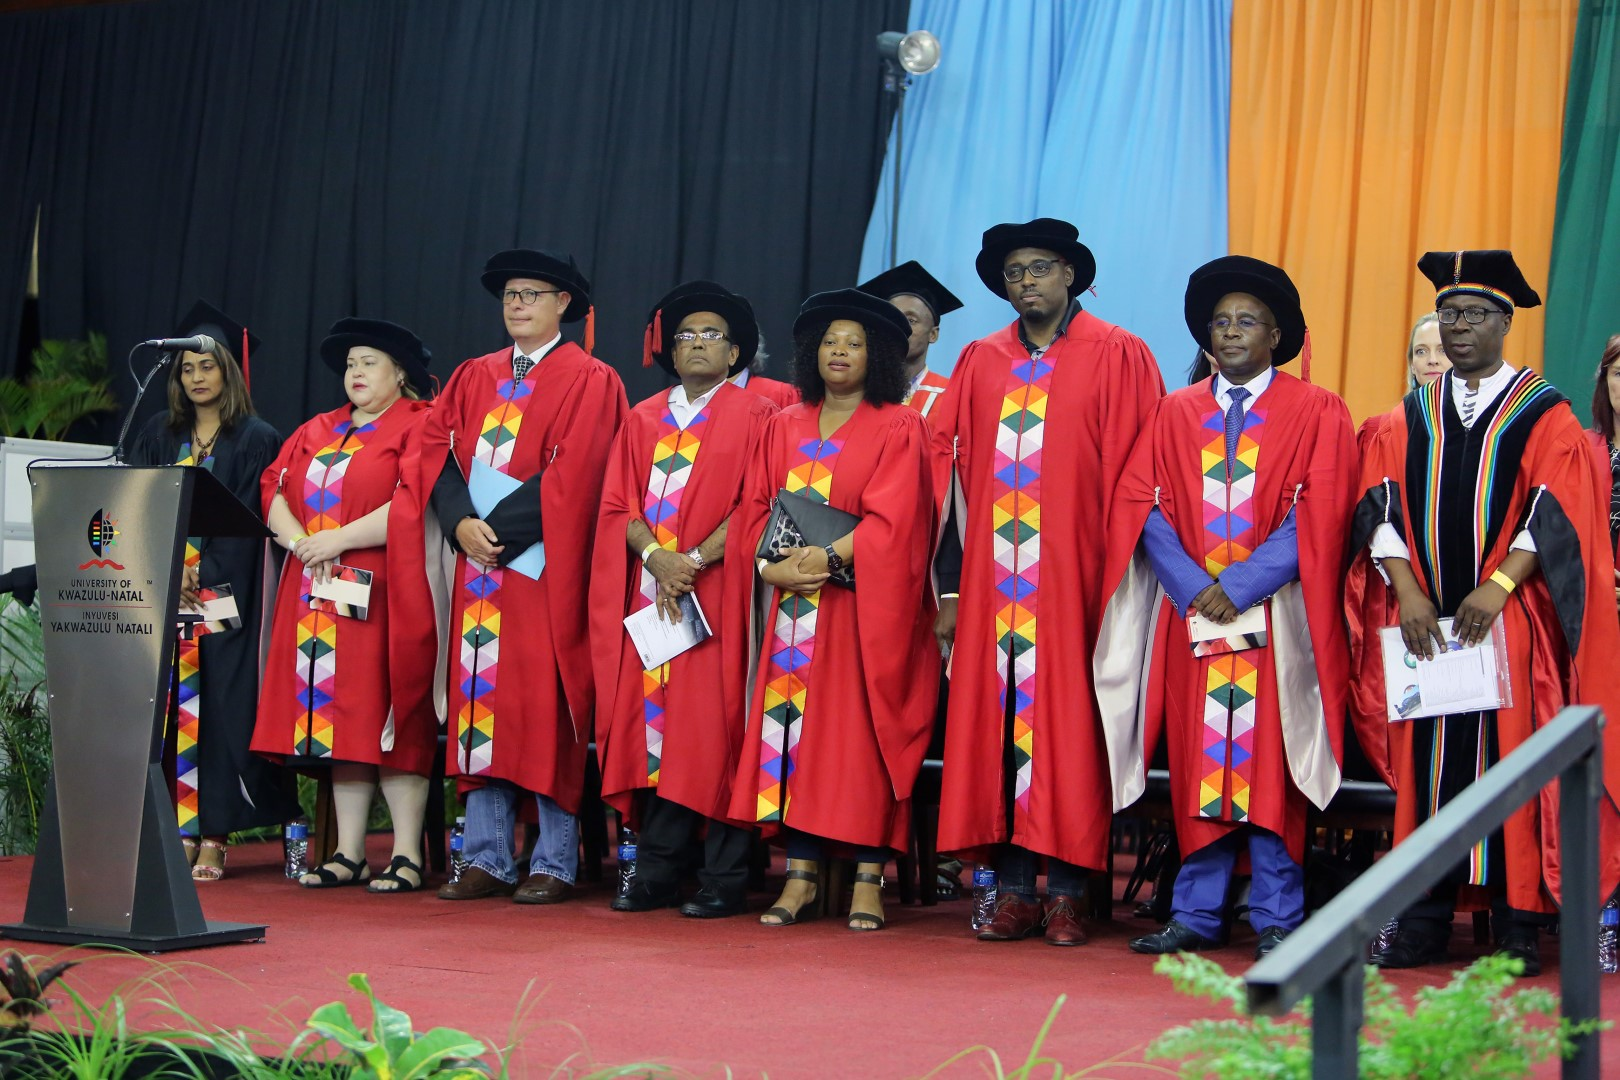 College of Humanities academic procession onstage